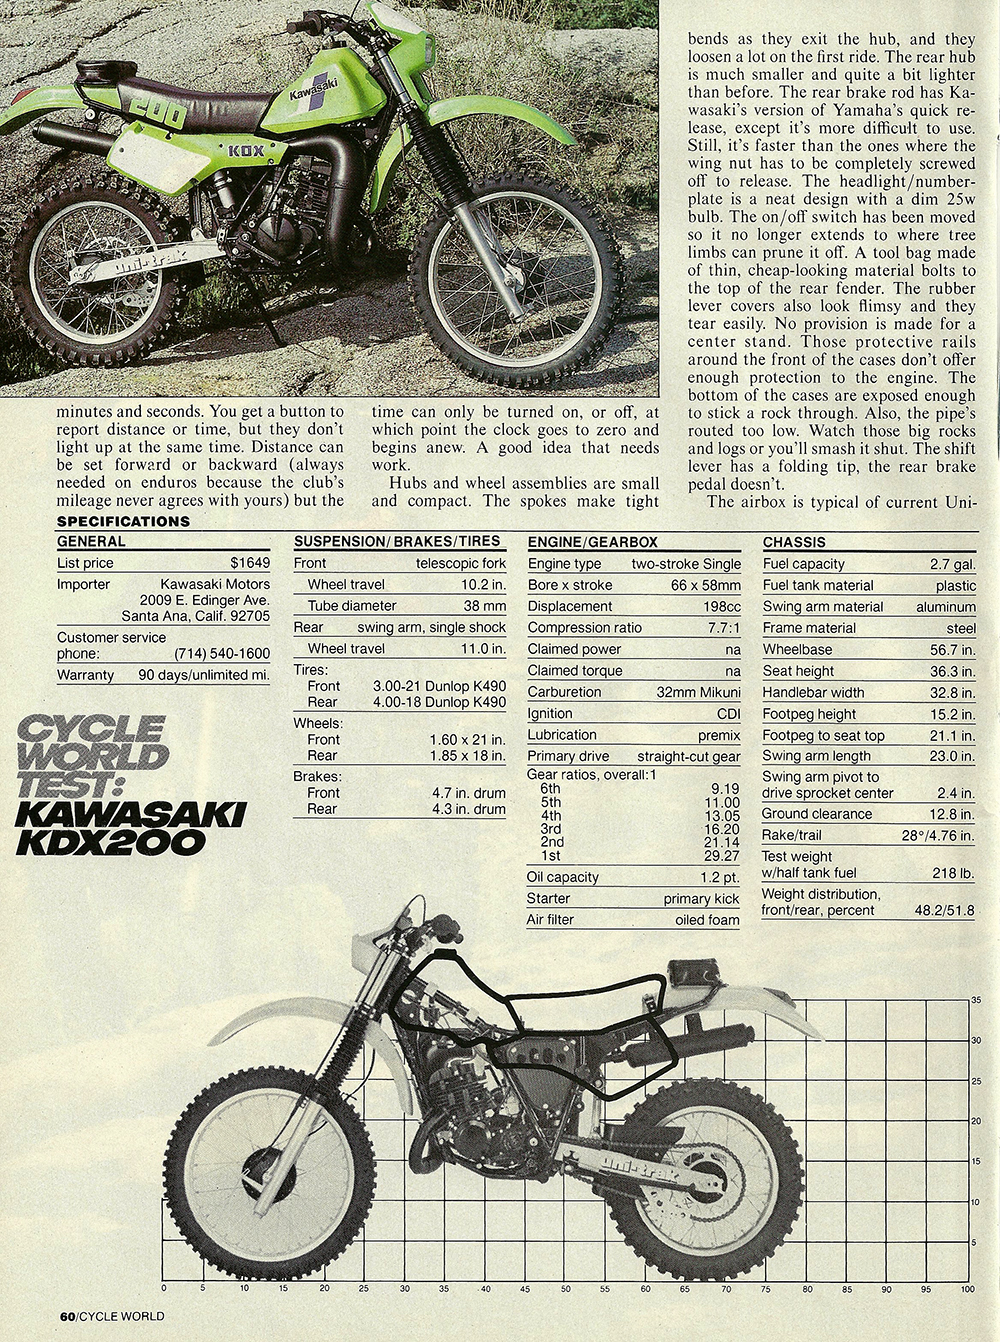 1983 Kawasaki KDX200 road test 03.jpg